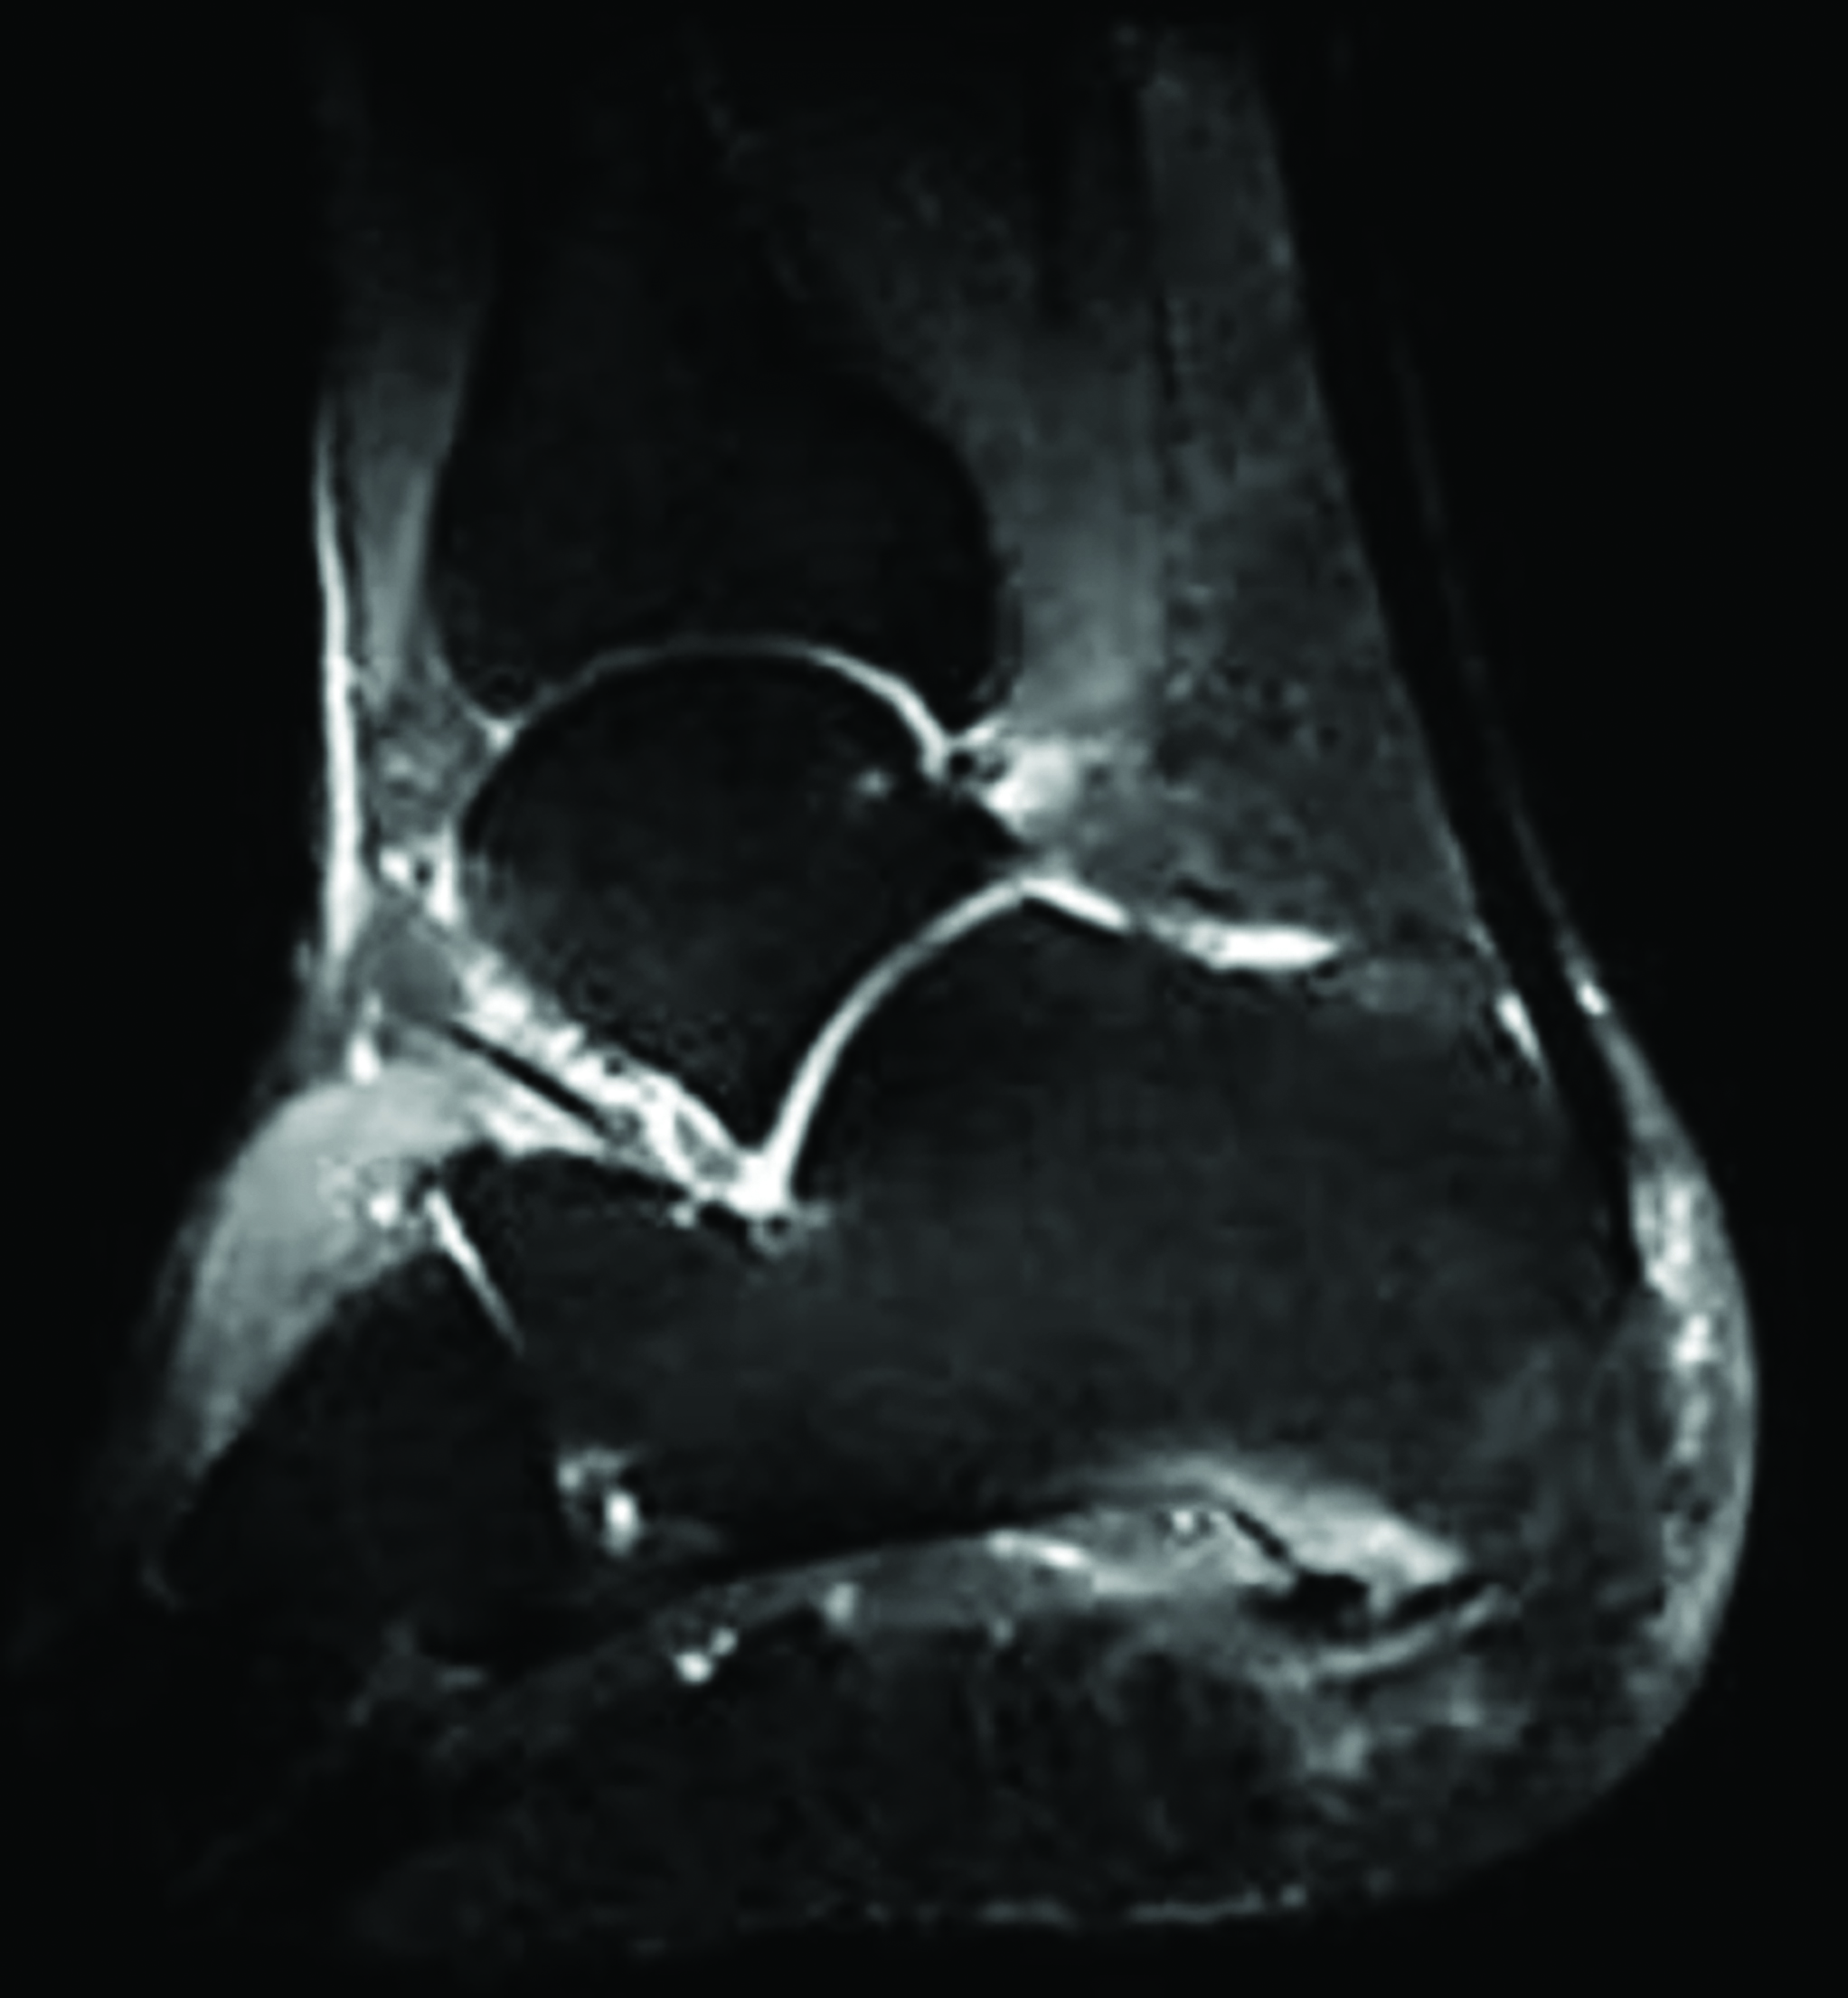 This T2 sagittal image from a magnetic resonance imaging (MRI) study of the hindfoot demonstrates bone marrow edema in the osseous region adjacent to the plantar fascia. This patient would be a candidate for subchondral stabilization of the calcaneus as an adjunctive surgical procedure.